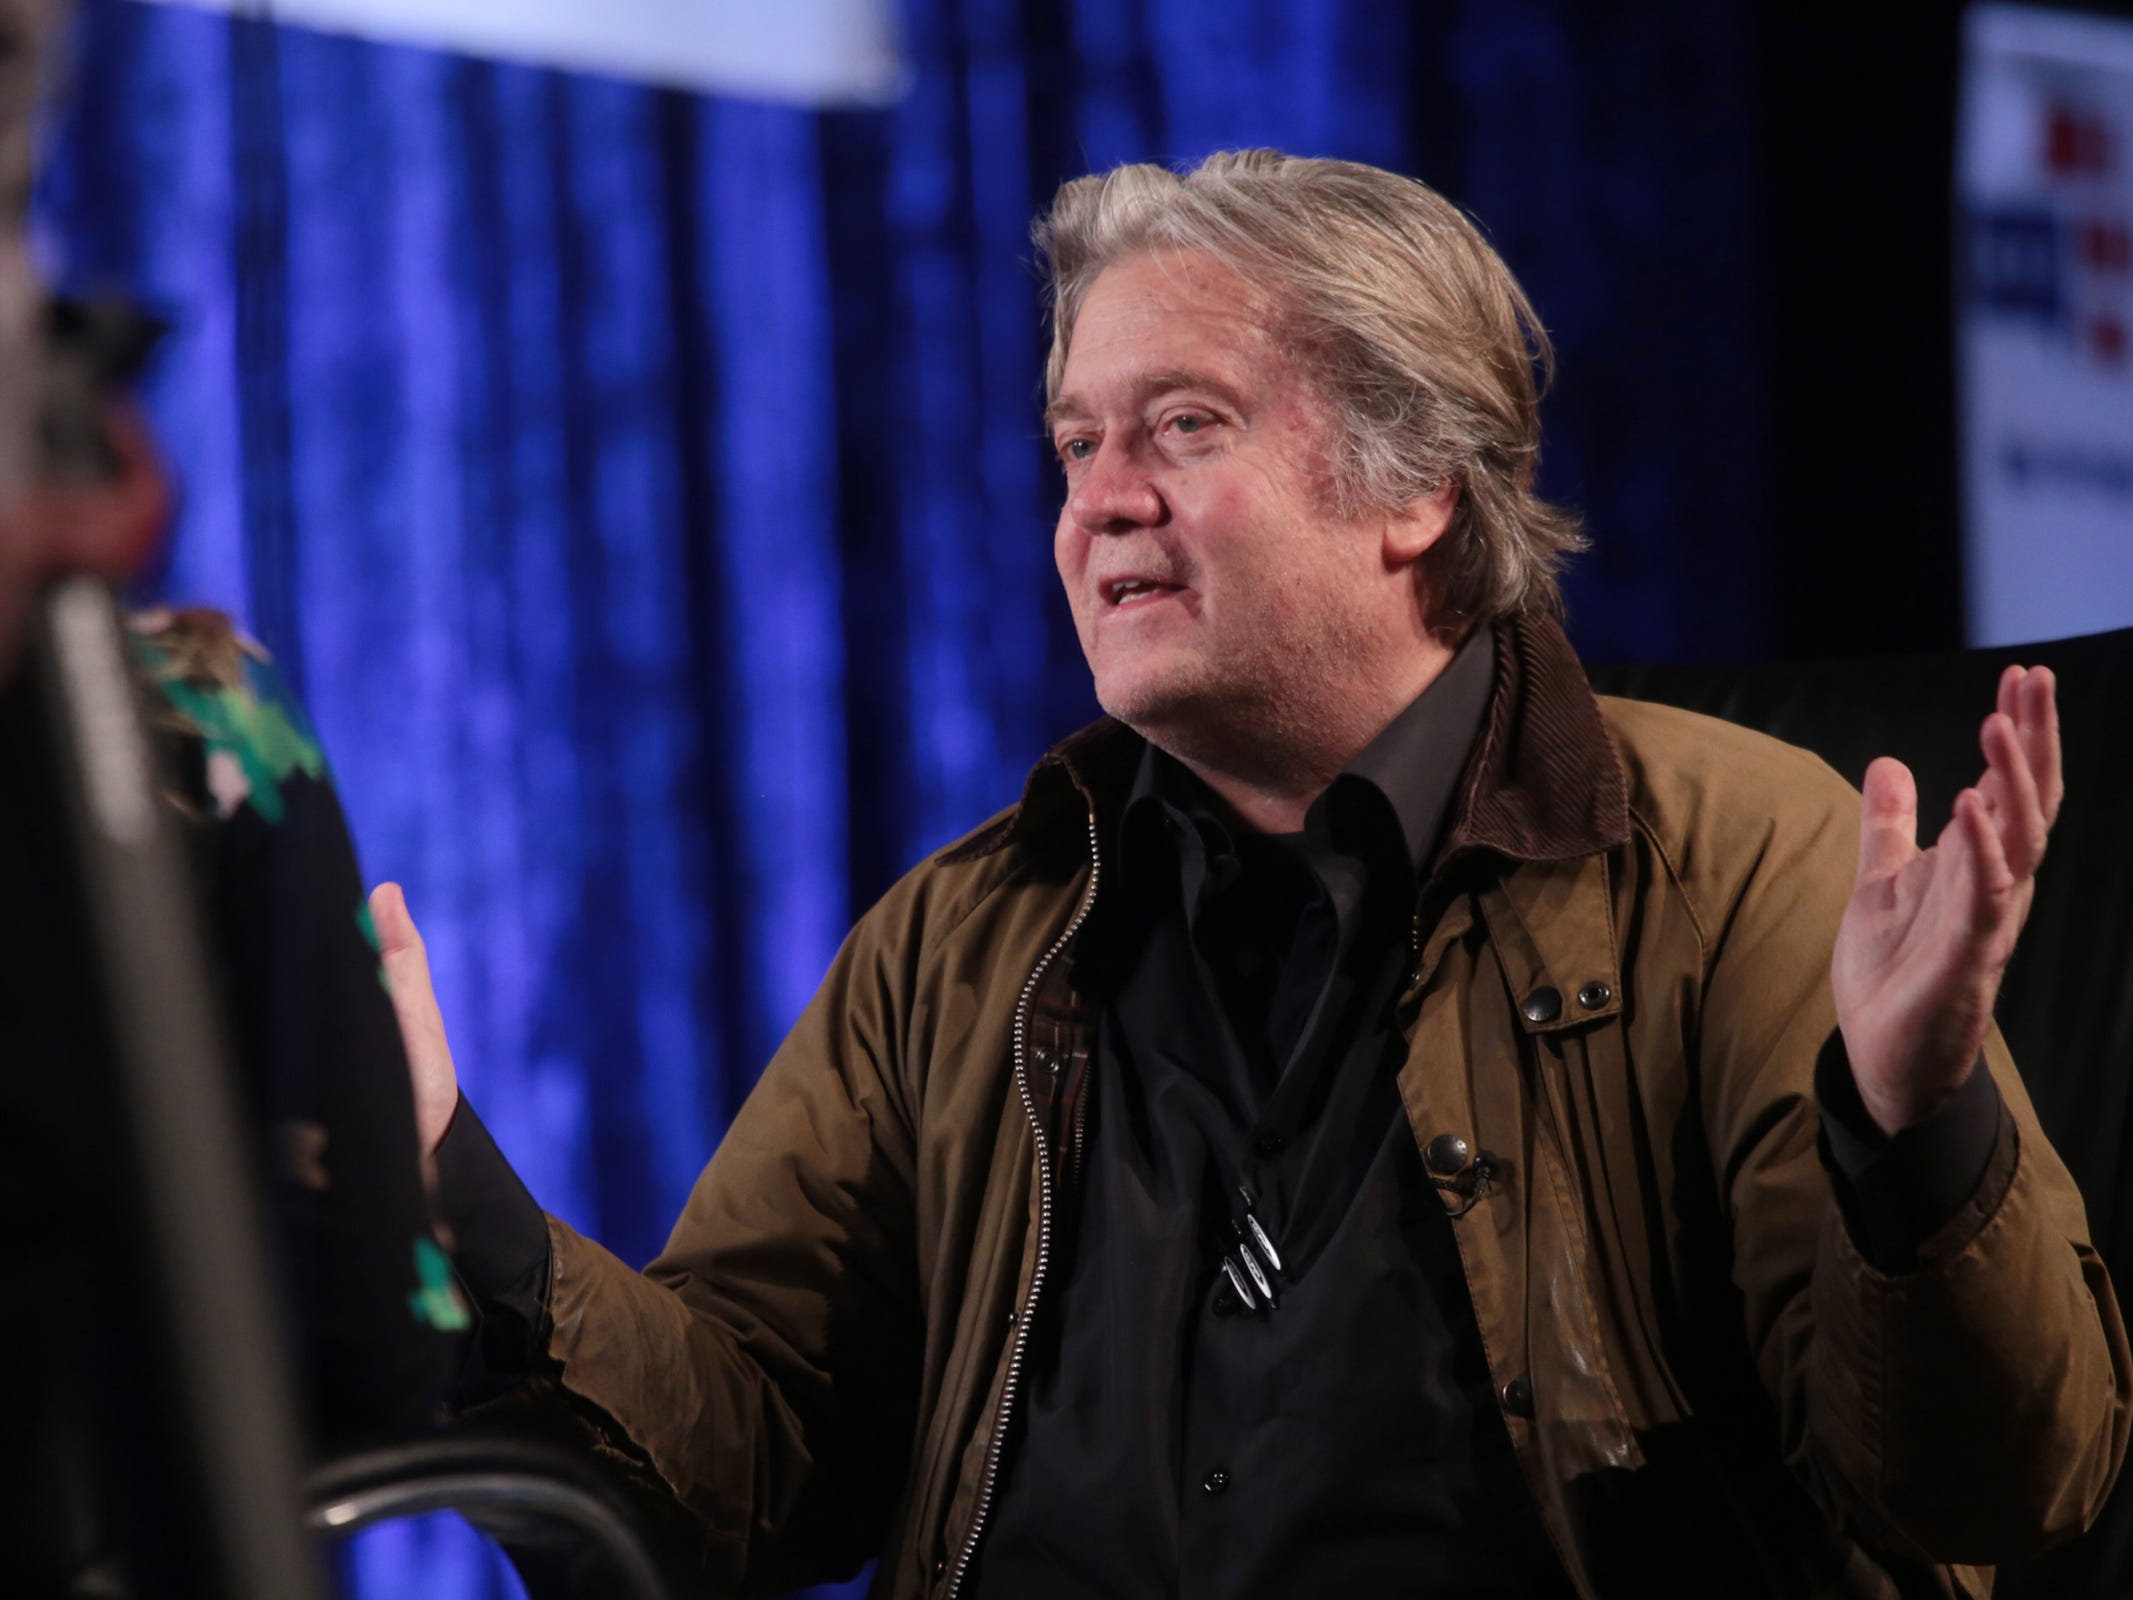 "Steve Bannon, former Exec. Chair of far-right Breitbart News & former chief strategist of Trump White House talks in an interview before speaking at Cobo Center in downtown Detroit on Thursday, March 14, 2019 during stop on his nationwide tour named ""We Build the Wall"" in support Trump's wish for $7-billion expansion of border wall with Mexico, aimed at stopping illegal immigration."